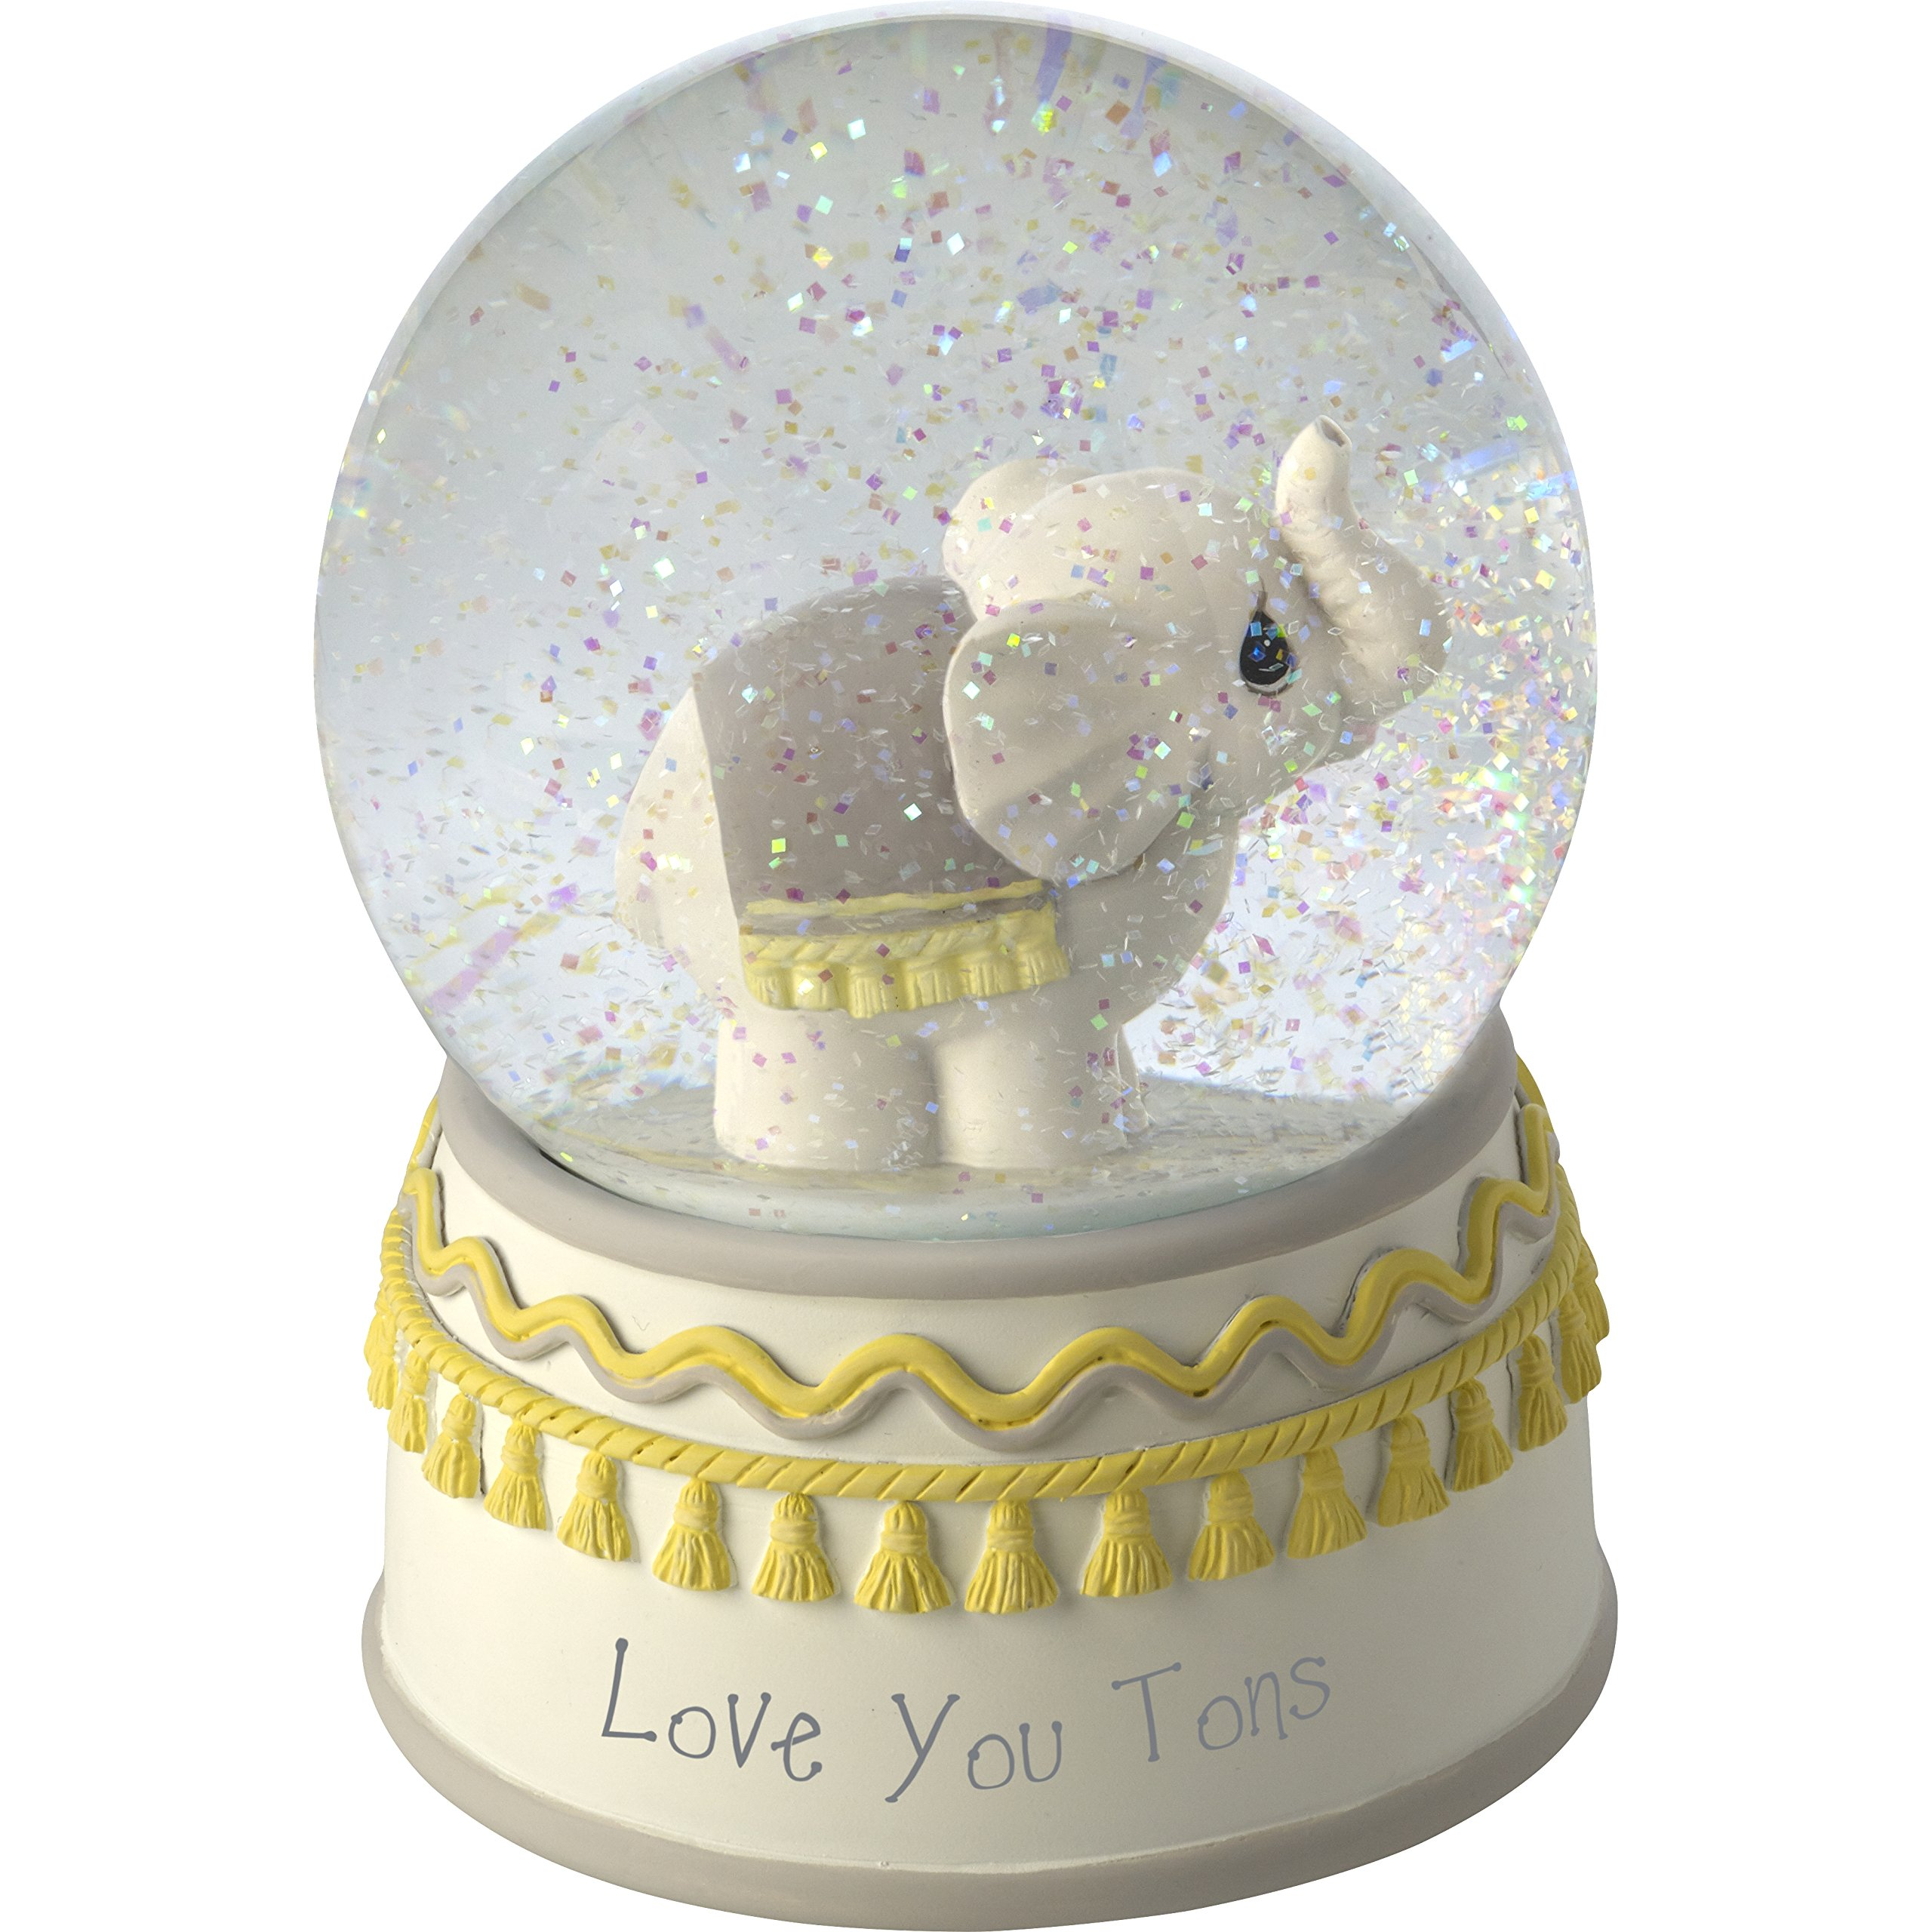 Precious Moments Resin/Glass Love You Tons Elephant Musical Snow Globe, Gray Chevron by Precious Moments